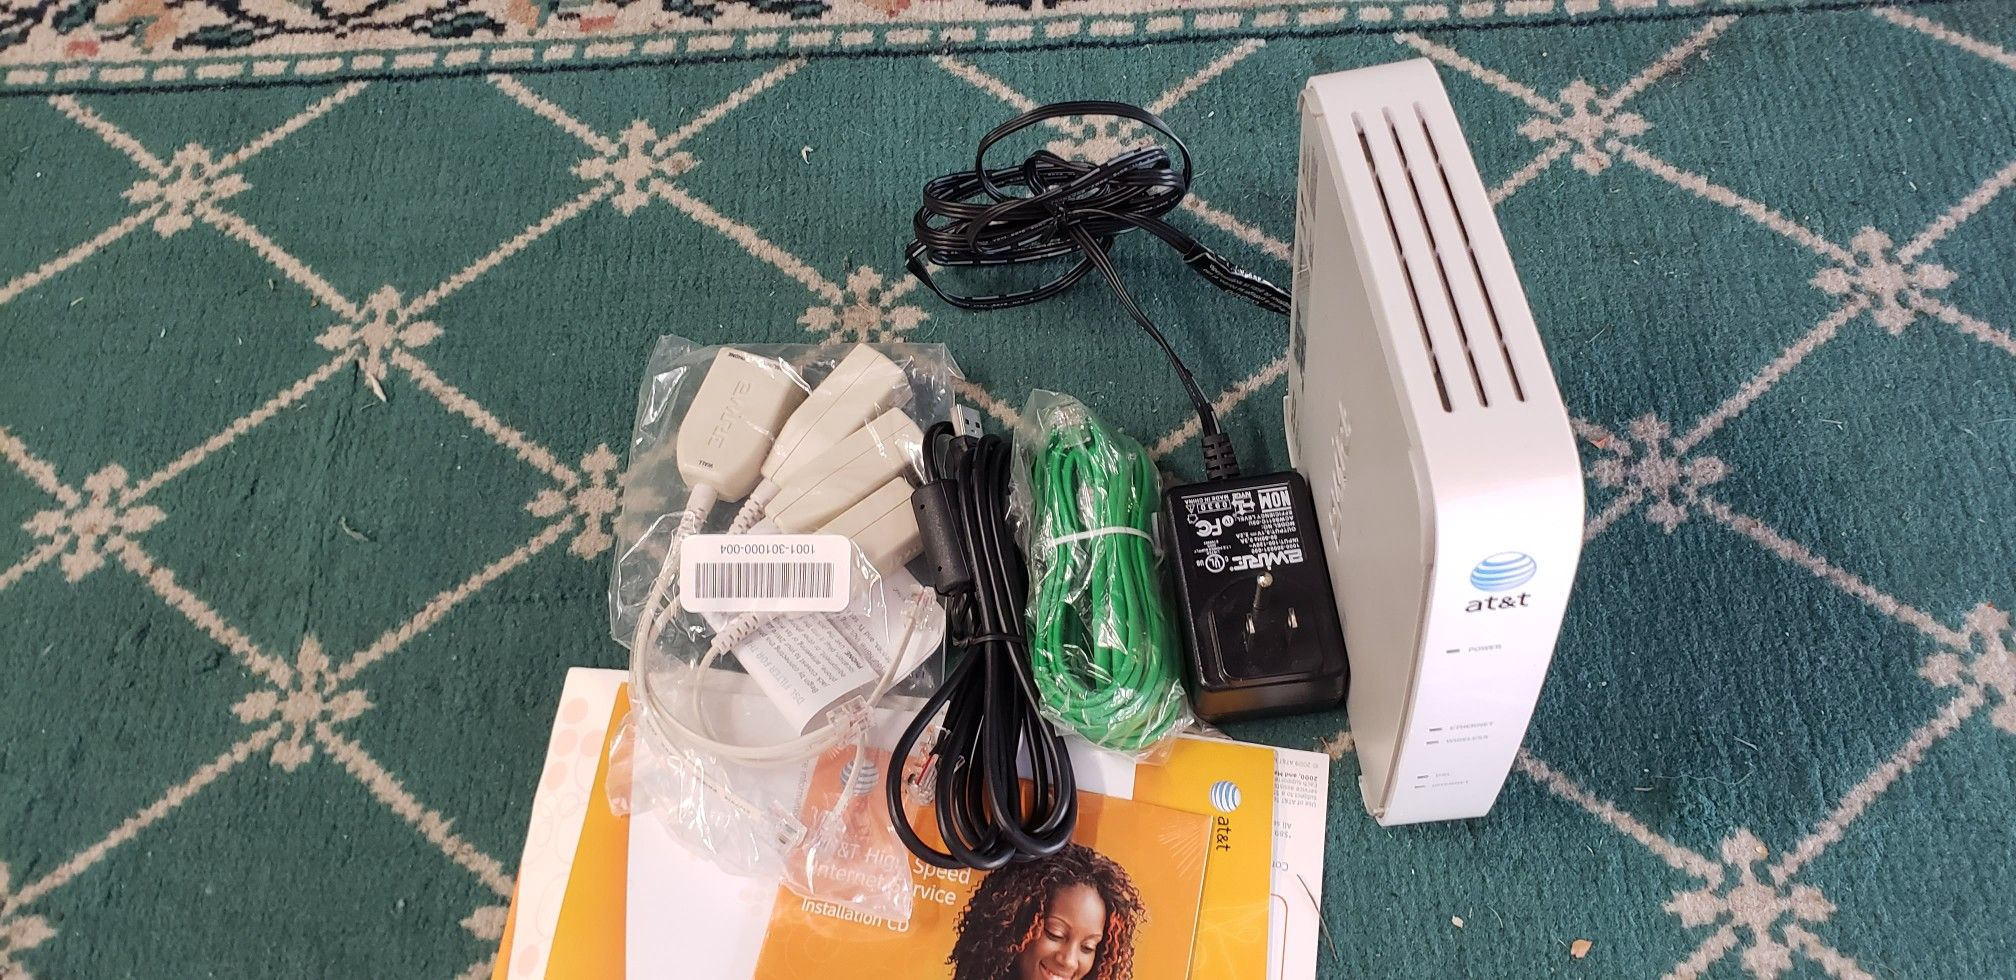 AT&T 2701HG-B 2Wire Wireless Gateway DSL Router Modem